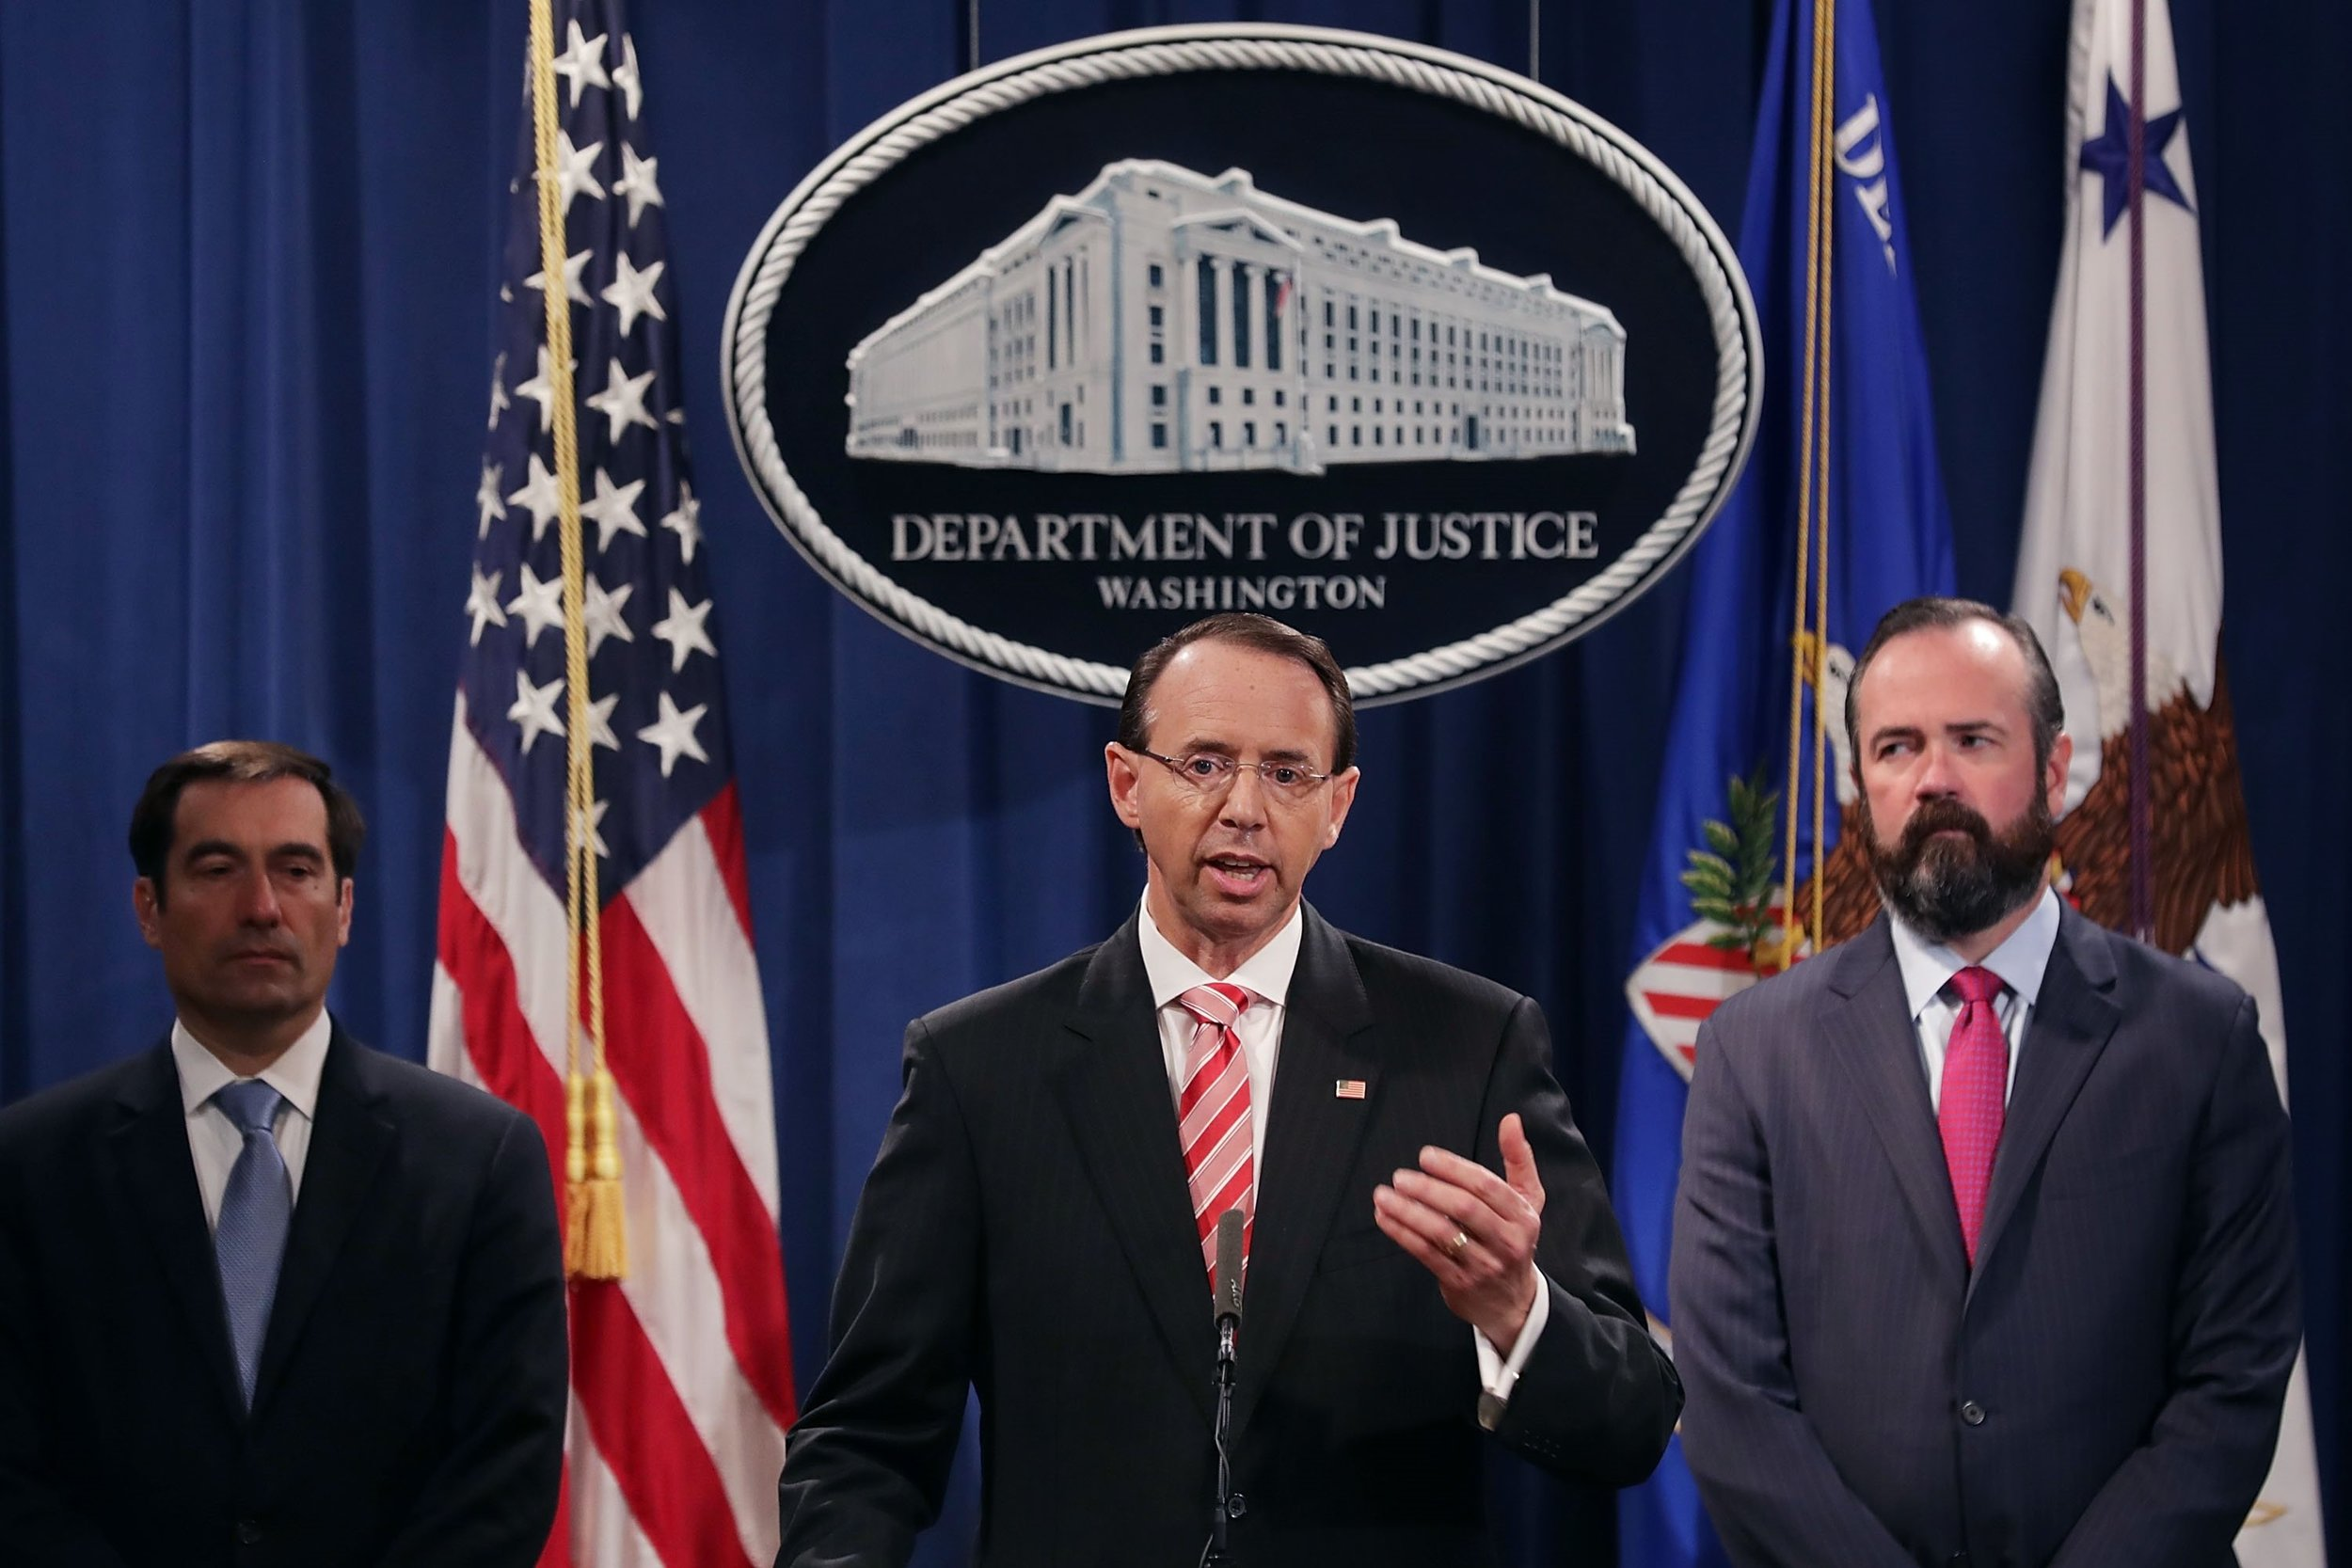 Deputy Attorney General Rod Rosenstein, joined by Justice Department officials John Demers and Edward O'Callaghan,discusses the indictments of Russian agents in a news conference at the Department of Justice on July 13,   2018   in Washington, DC. (Getty Images/Chip Somodevilla)